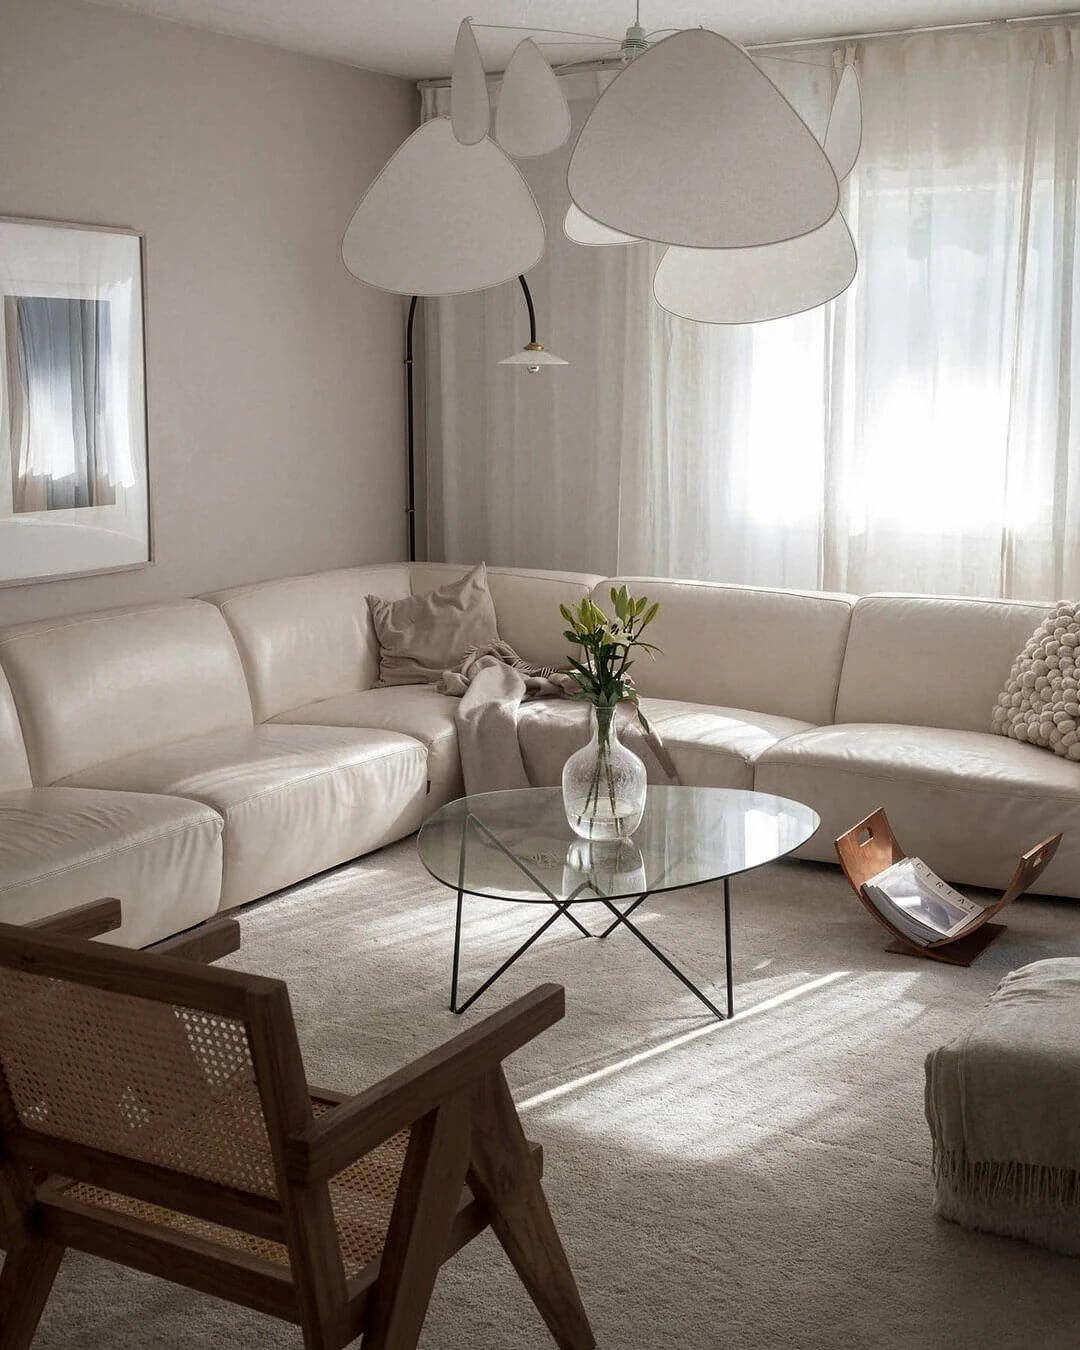 2. Stylish space with natural motives